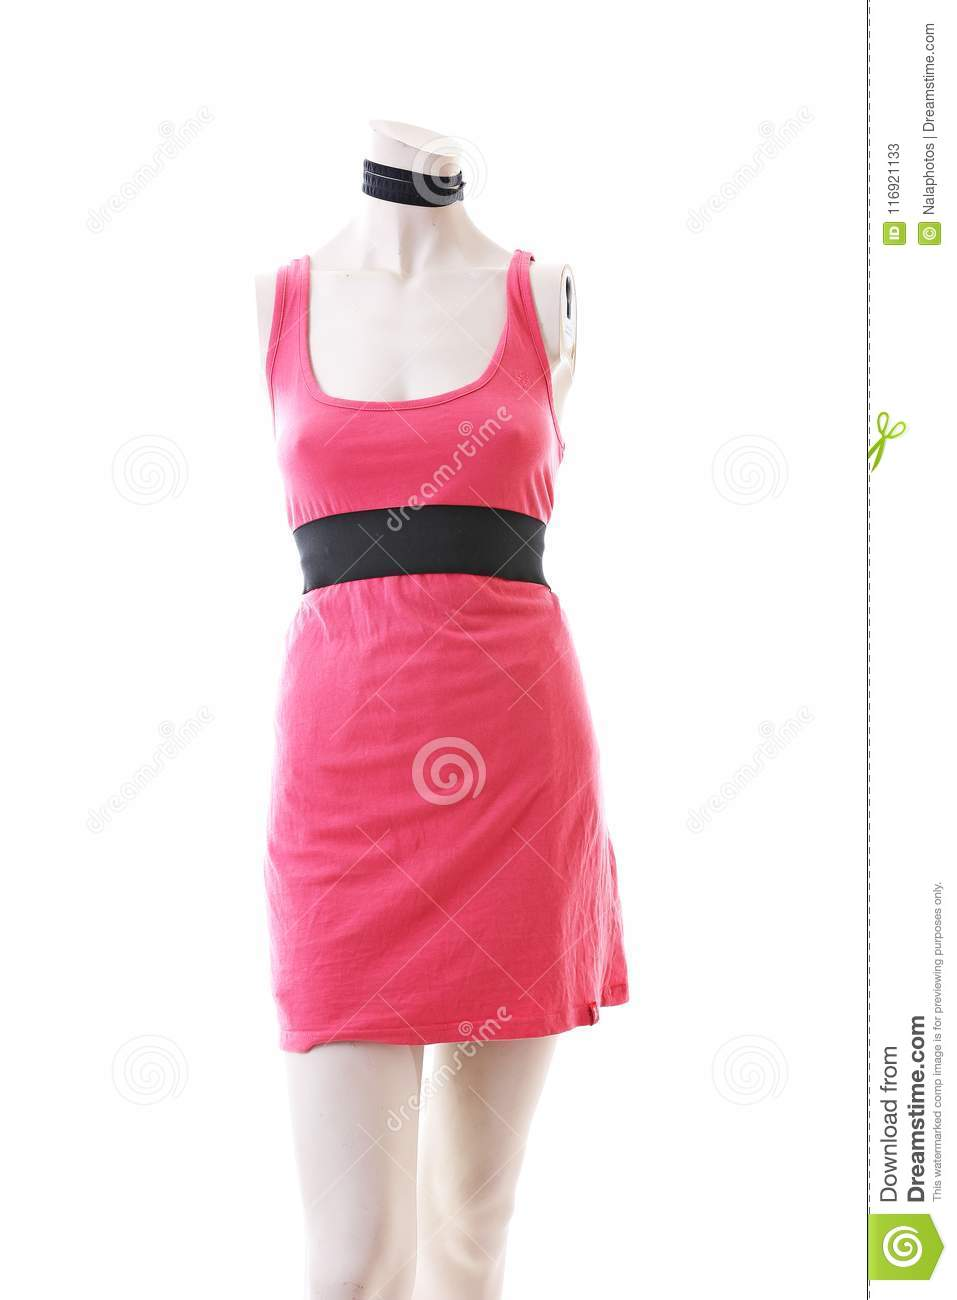 8a926bf80a0 Pink dress long top mini dress on mannequin full body shop display. Woman  fashion styles